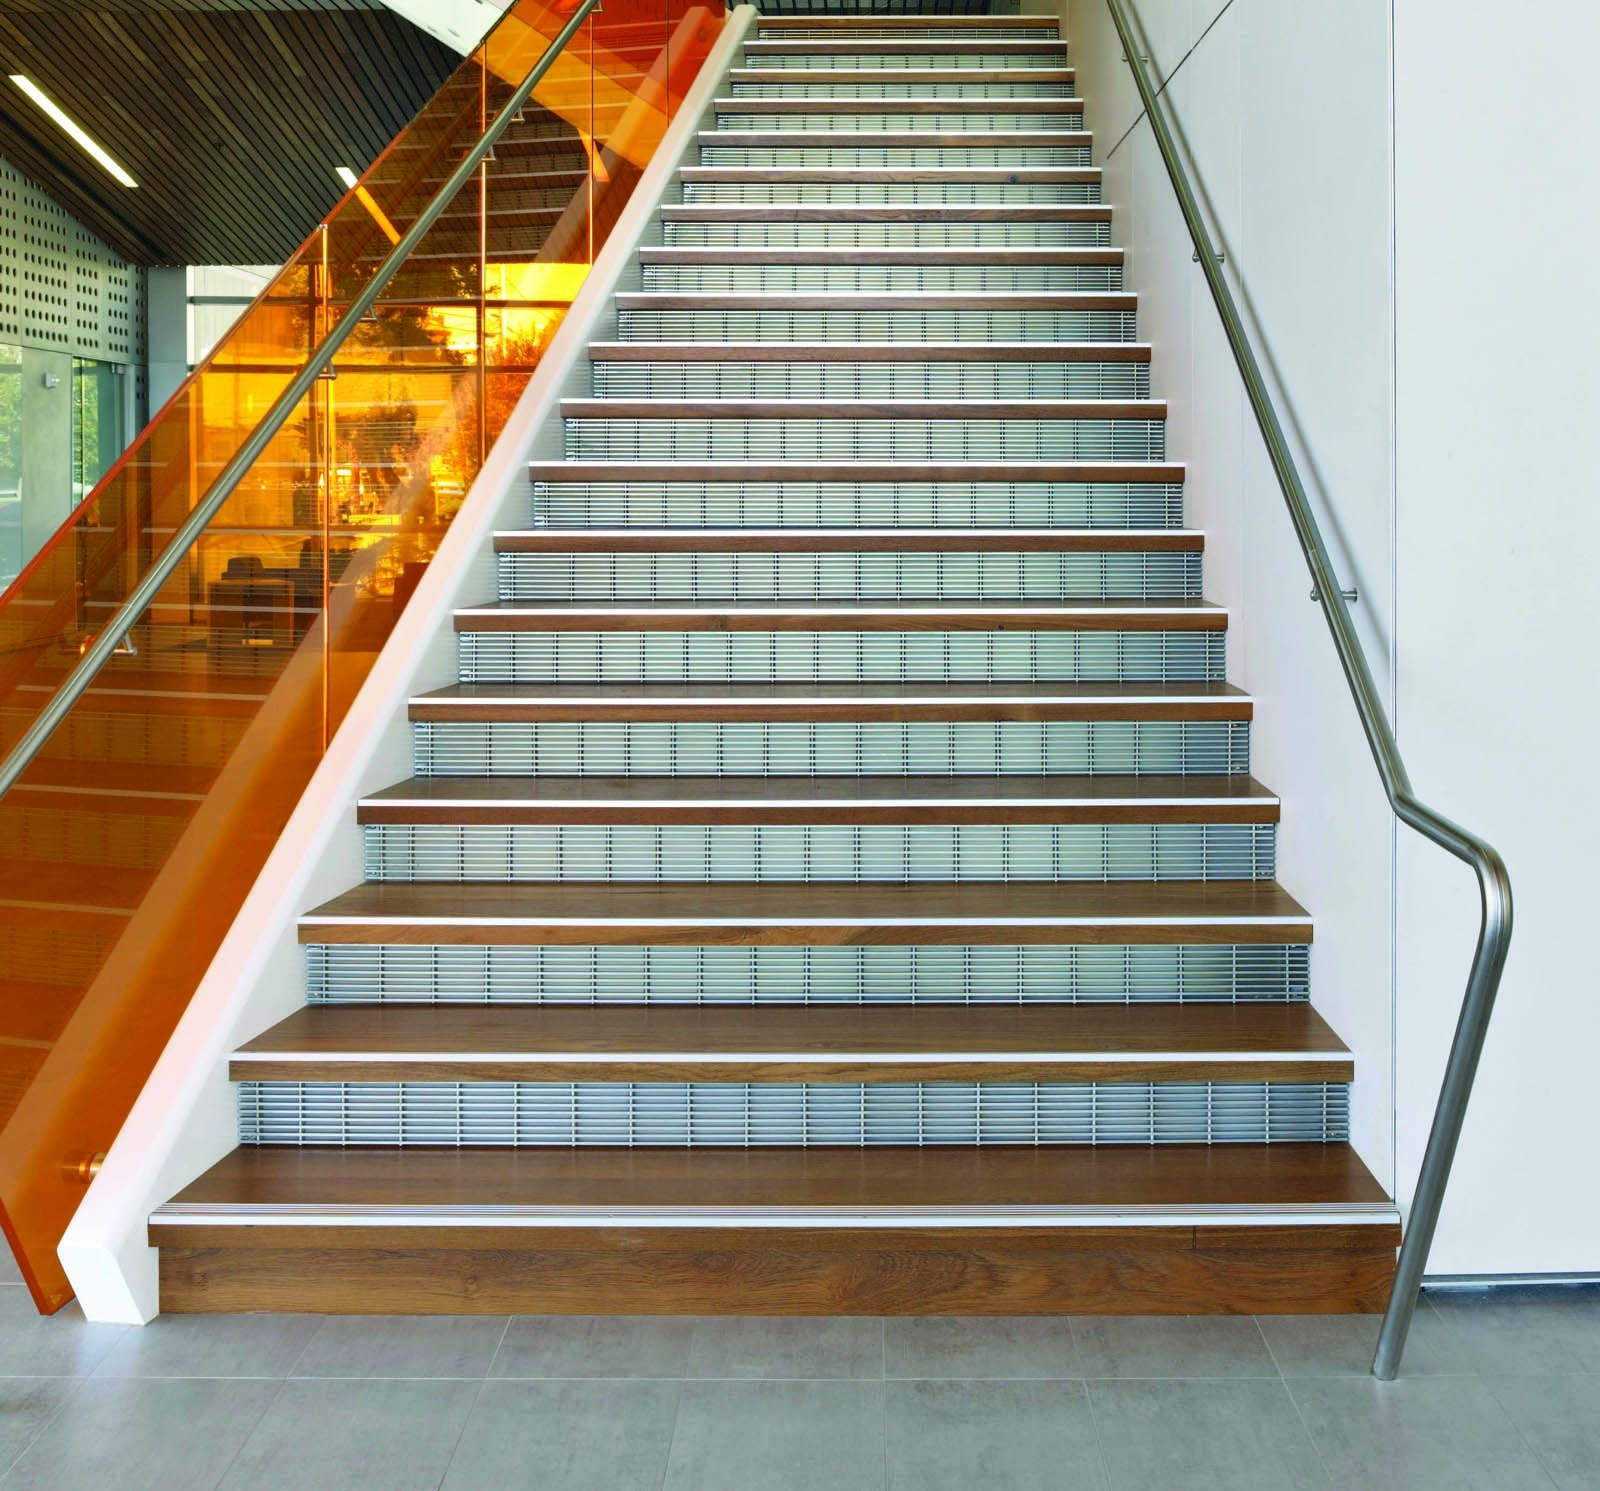 Metal Stair Treads Risers Perforated Metal Stair Panels | Prefabricated Exterior Metal Stairs | Stair Case | Spiral Staircases | Stairways | Stair Systems | Wrought Iron